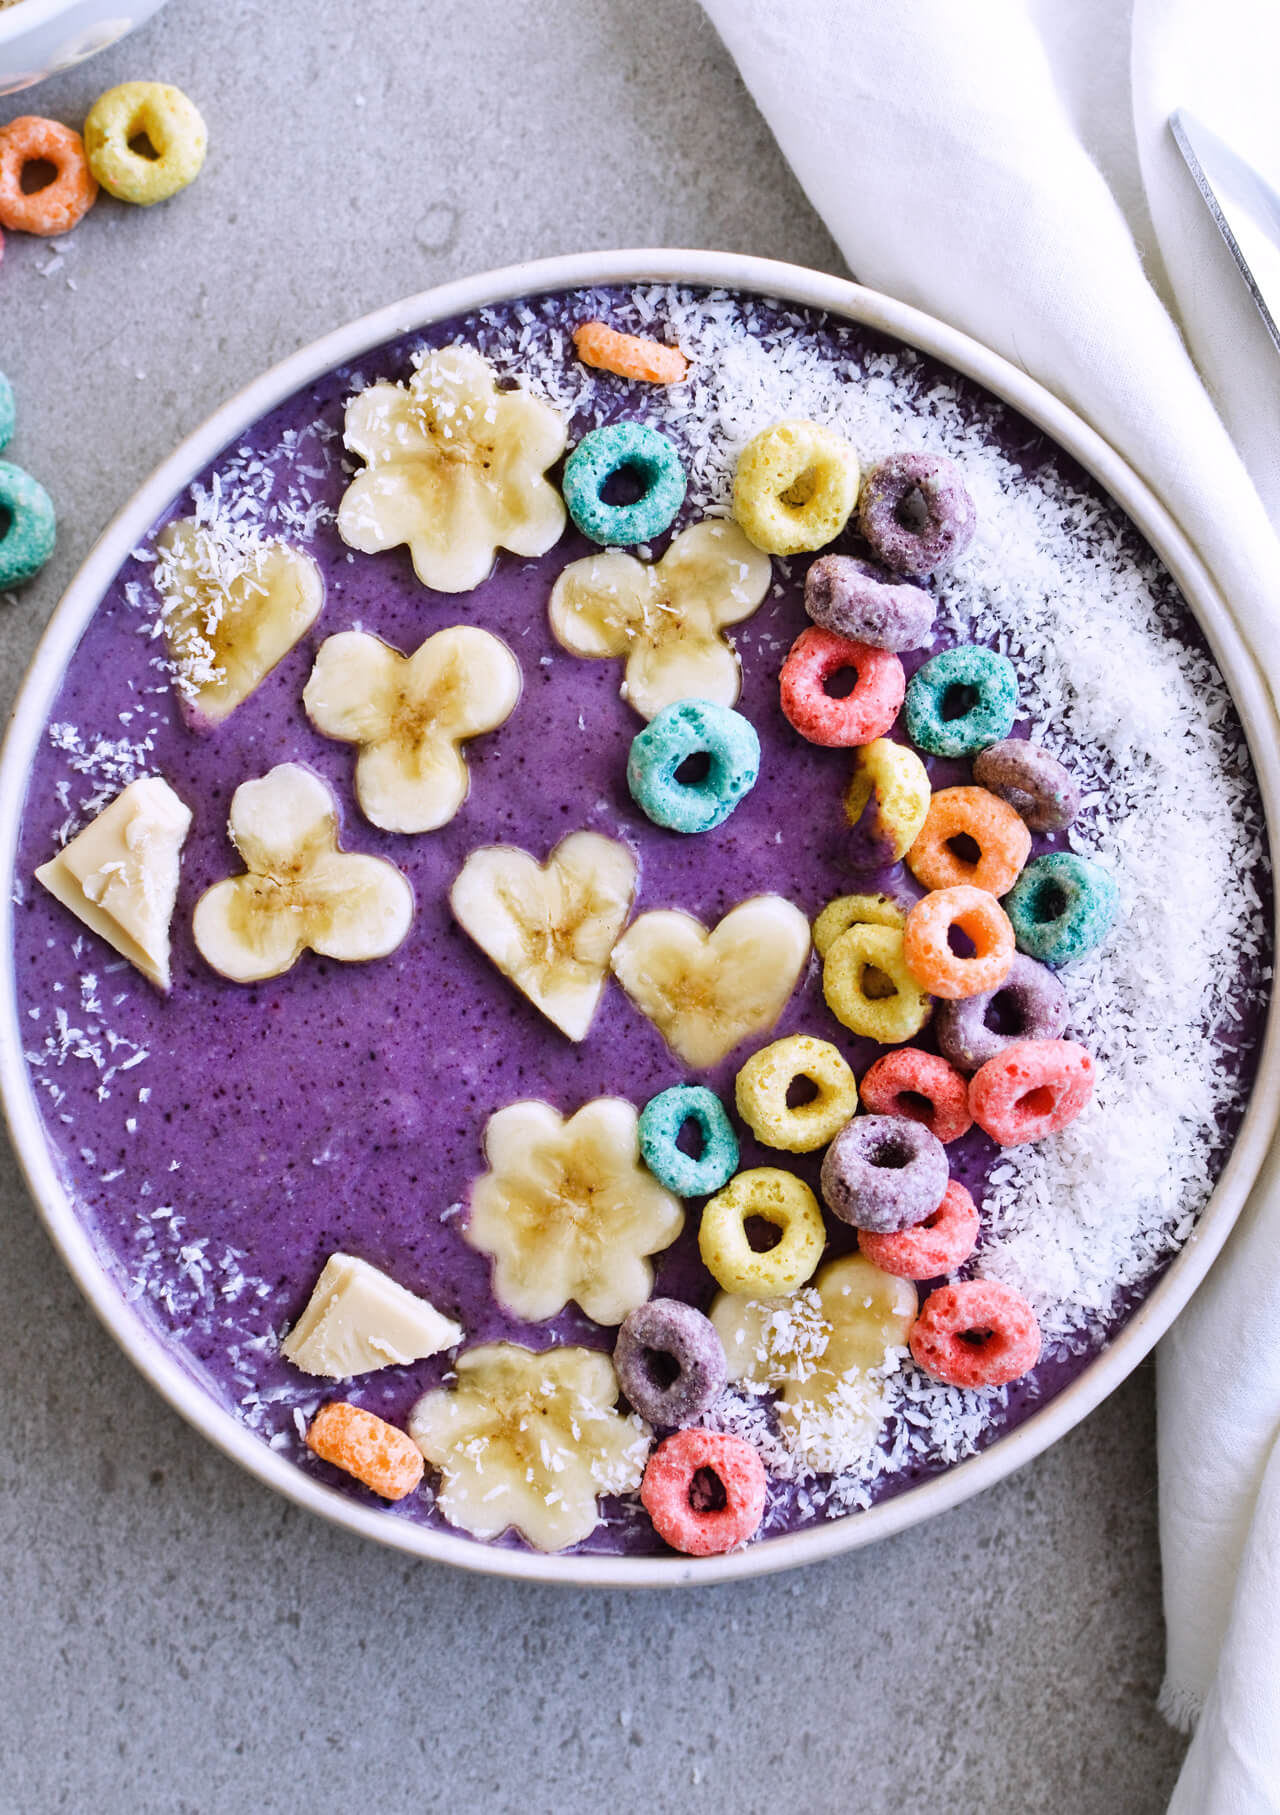 Recipe for creamy, nourishing Coconut blueberry oat smoothie. Made with oats, chia seeds, almond butter and more - this truly is the perfect breakfast! Topped with coconut and pretty froot loops! | sugarsalted.com